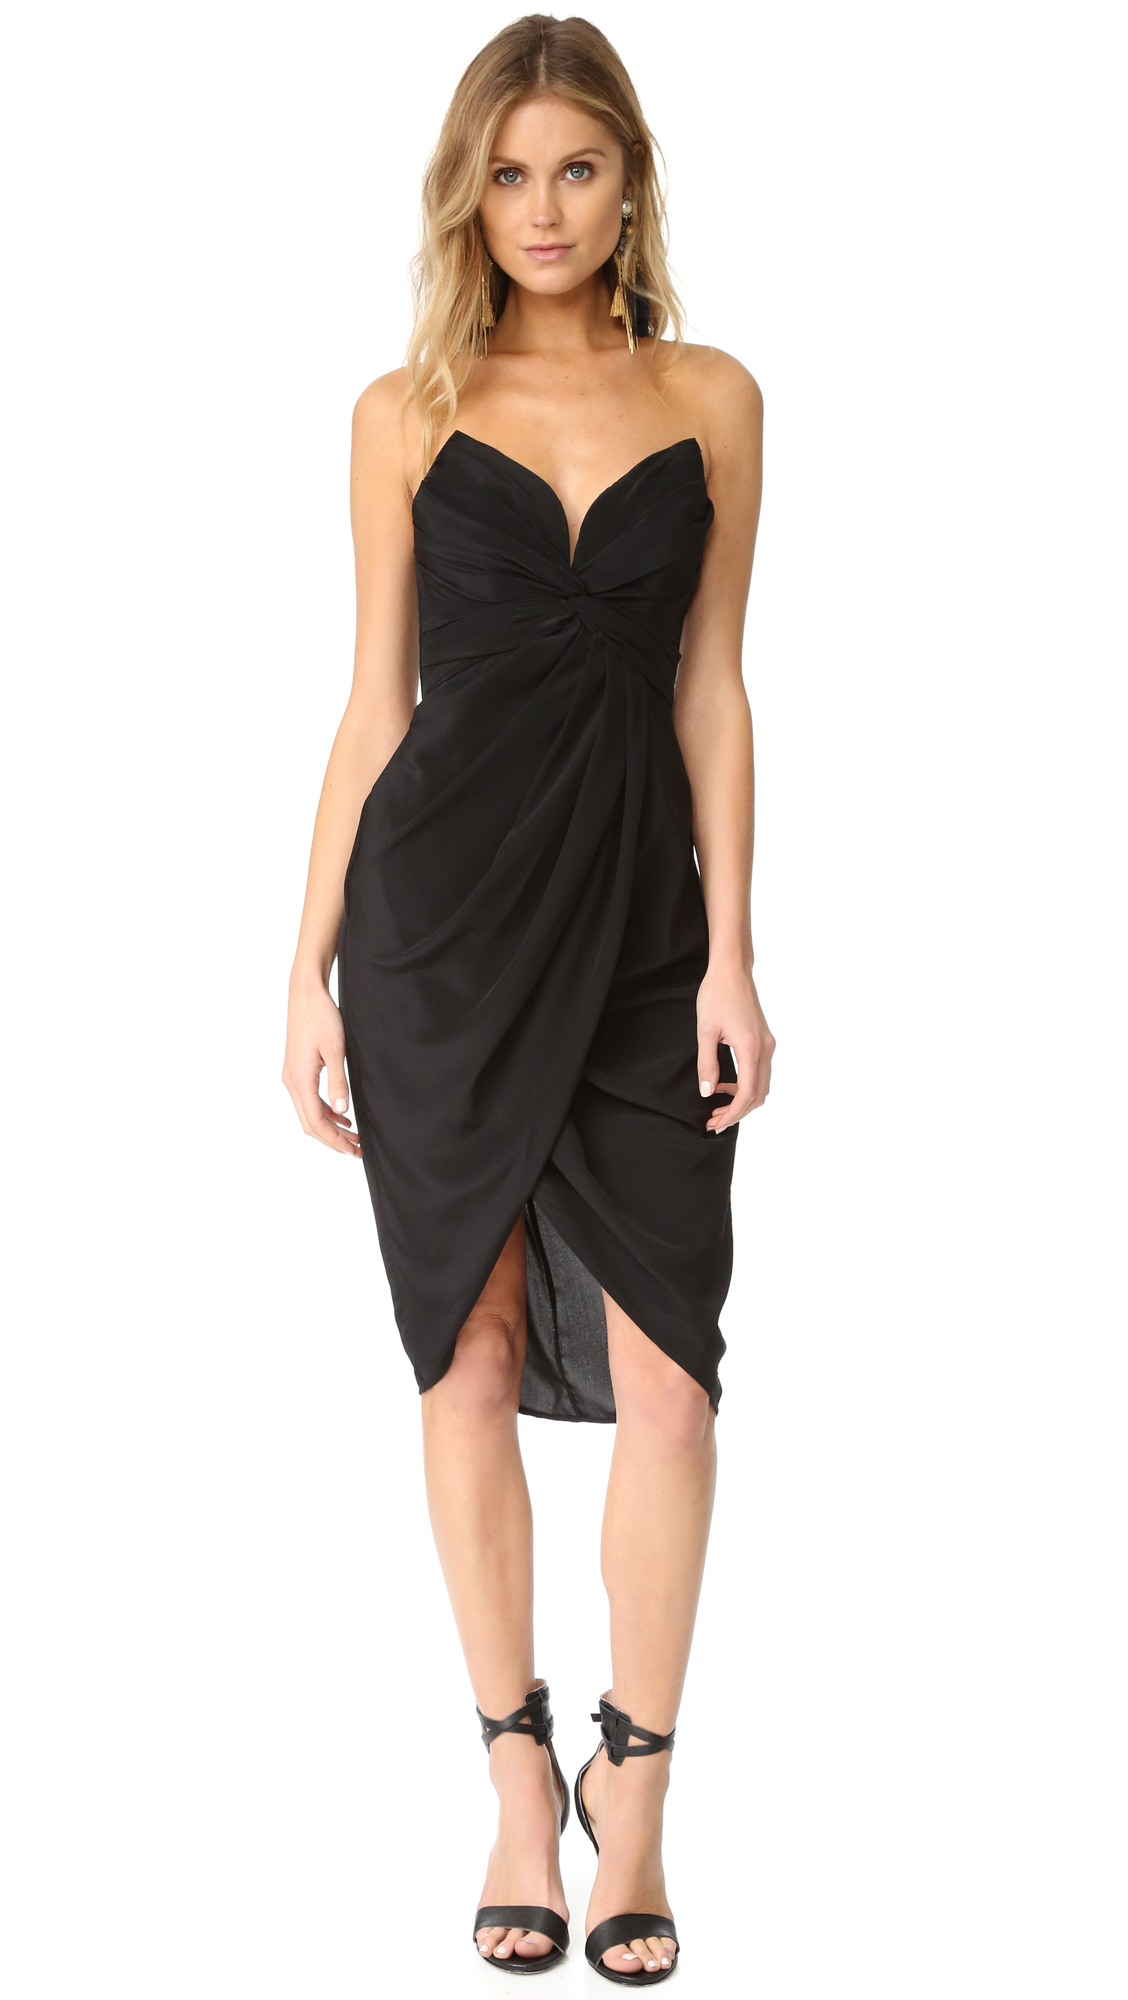 Zimmermann Silk Petal Twist Dress - Black